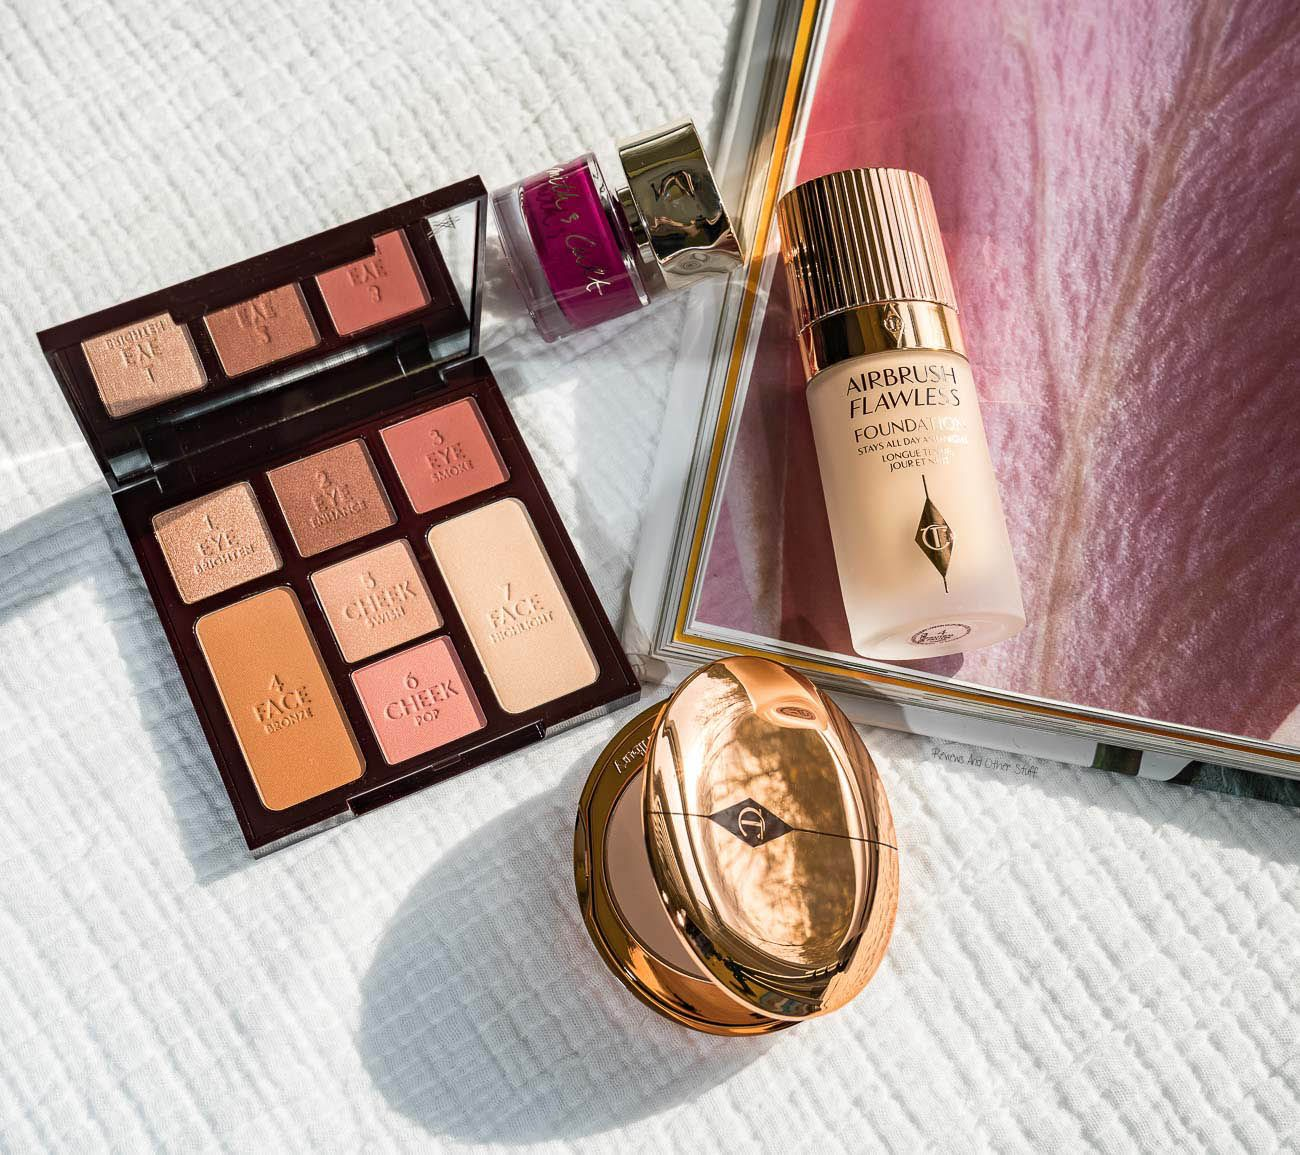 Charlotte Tilbury Instant Look In A Palette Gorgeous Glowing Beauty Review Swatches Reviews And Other Stuff Beauty Review Beauty Compact Complete Makeup